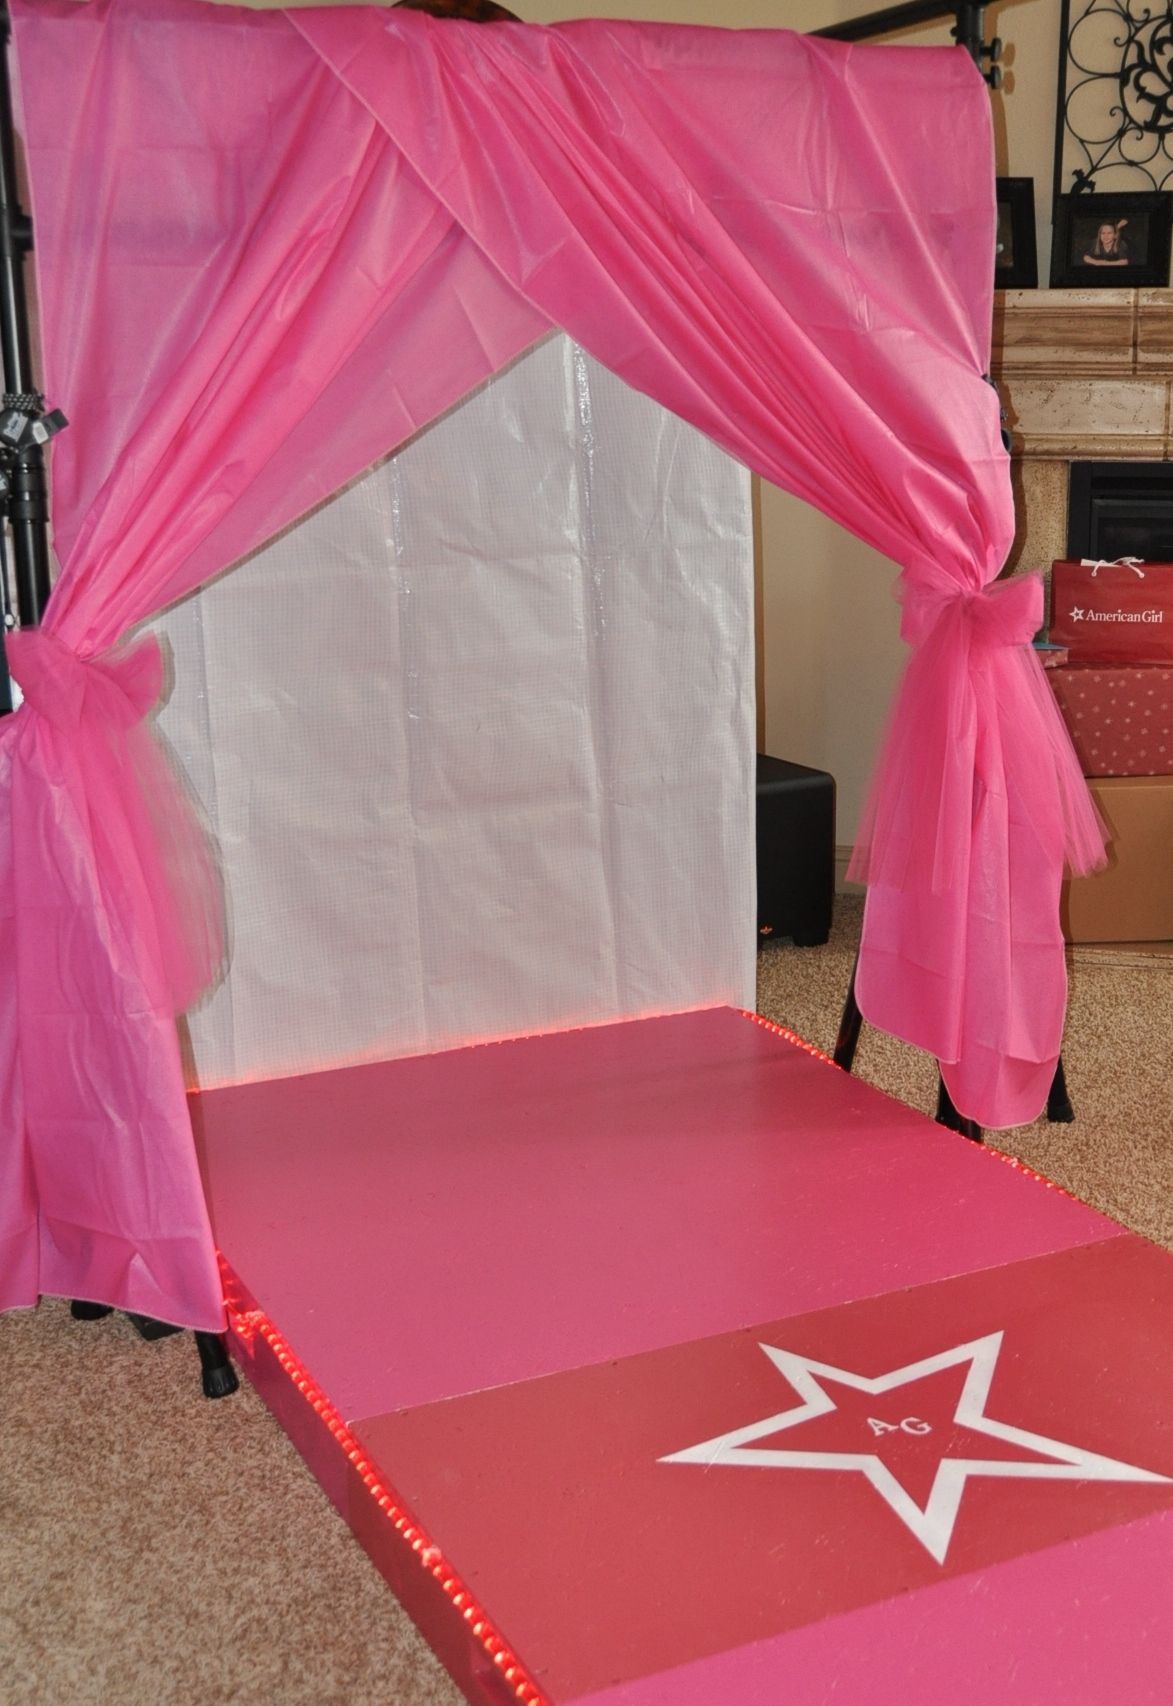 Fashion Show Stage that daddy built...complete with pink rope lights ...